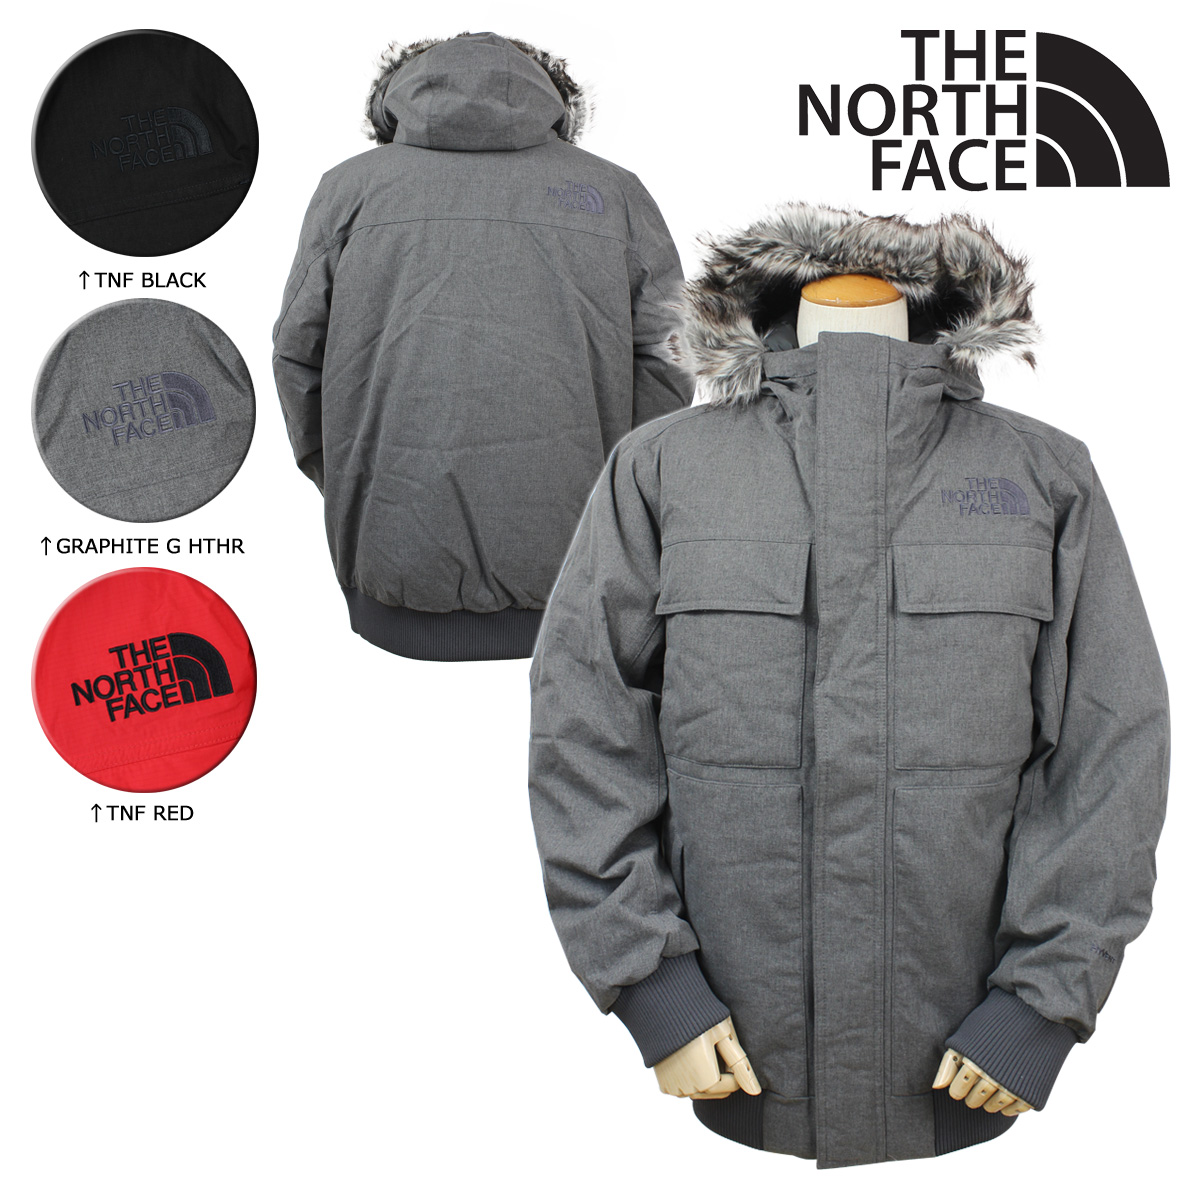 9d880e329 North face THE NORTH FACE mens Jacket Mountain parka CYK7 3 color MEN's  GOTHAM JACKET 2 [11 / 6 new in stock]